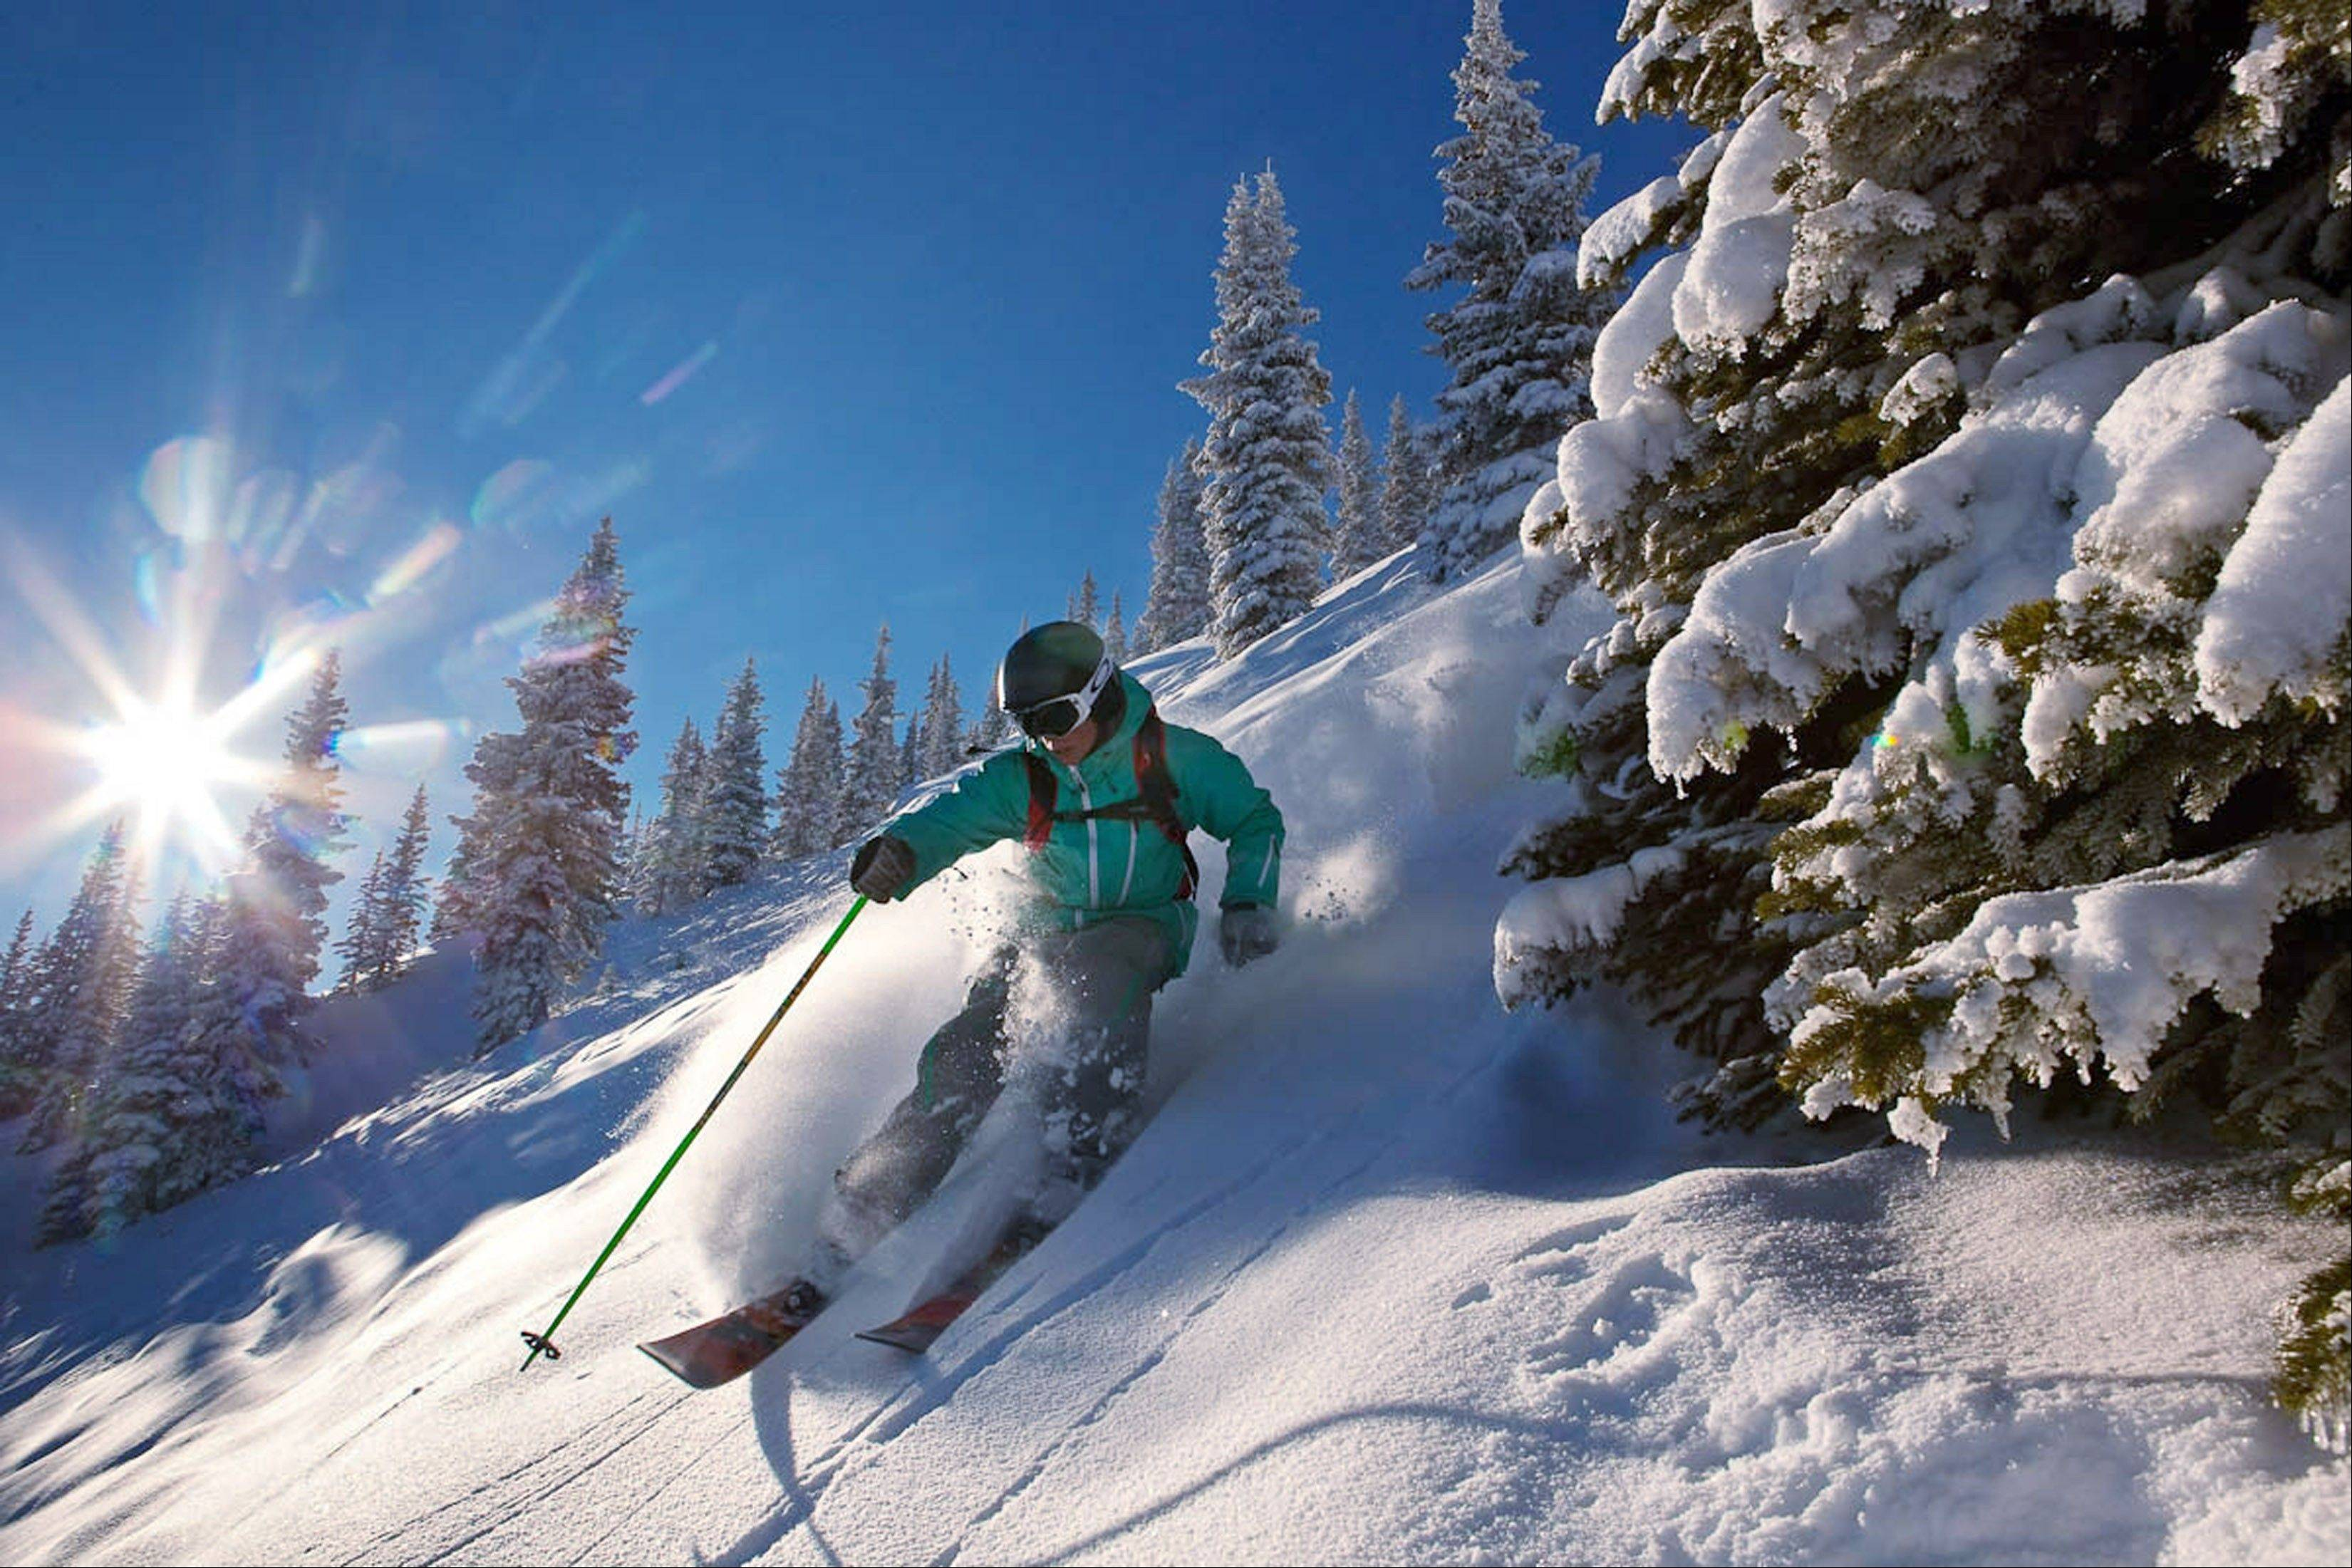 Colorado's ski areas hoping for a rebound from disappointing 2012